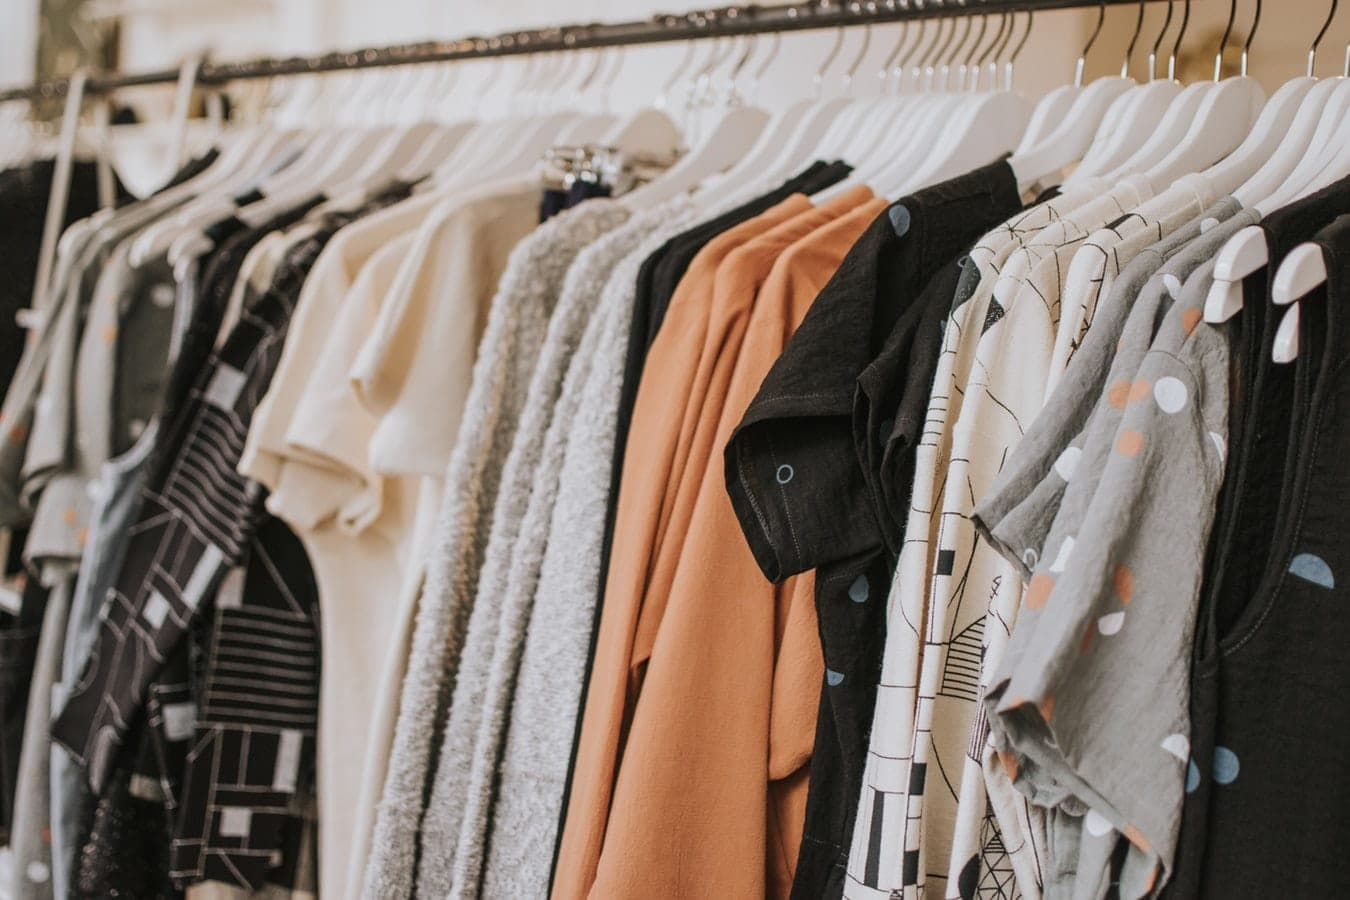 Clothes on a clothing rail